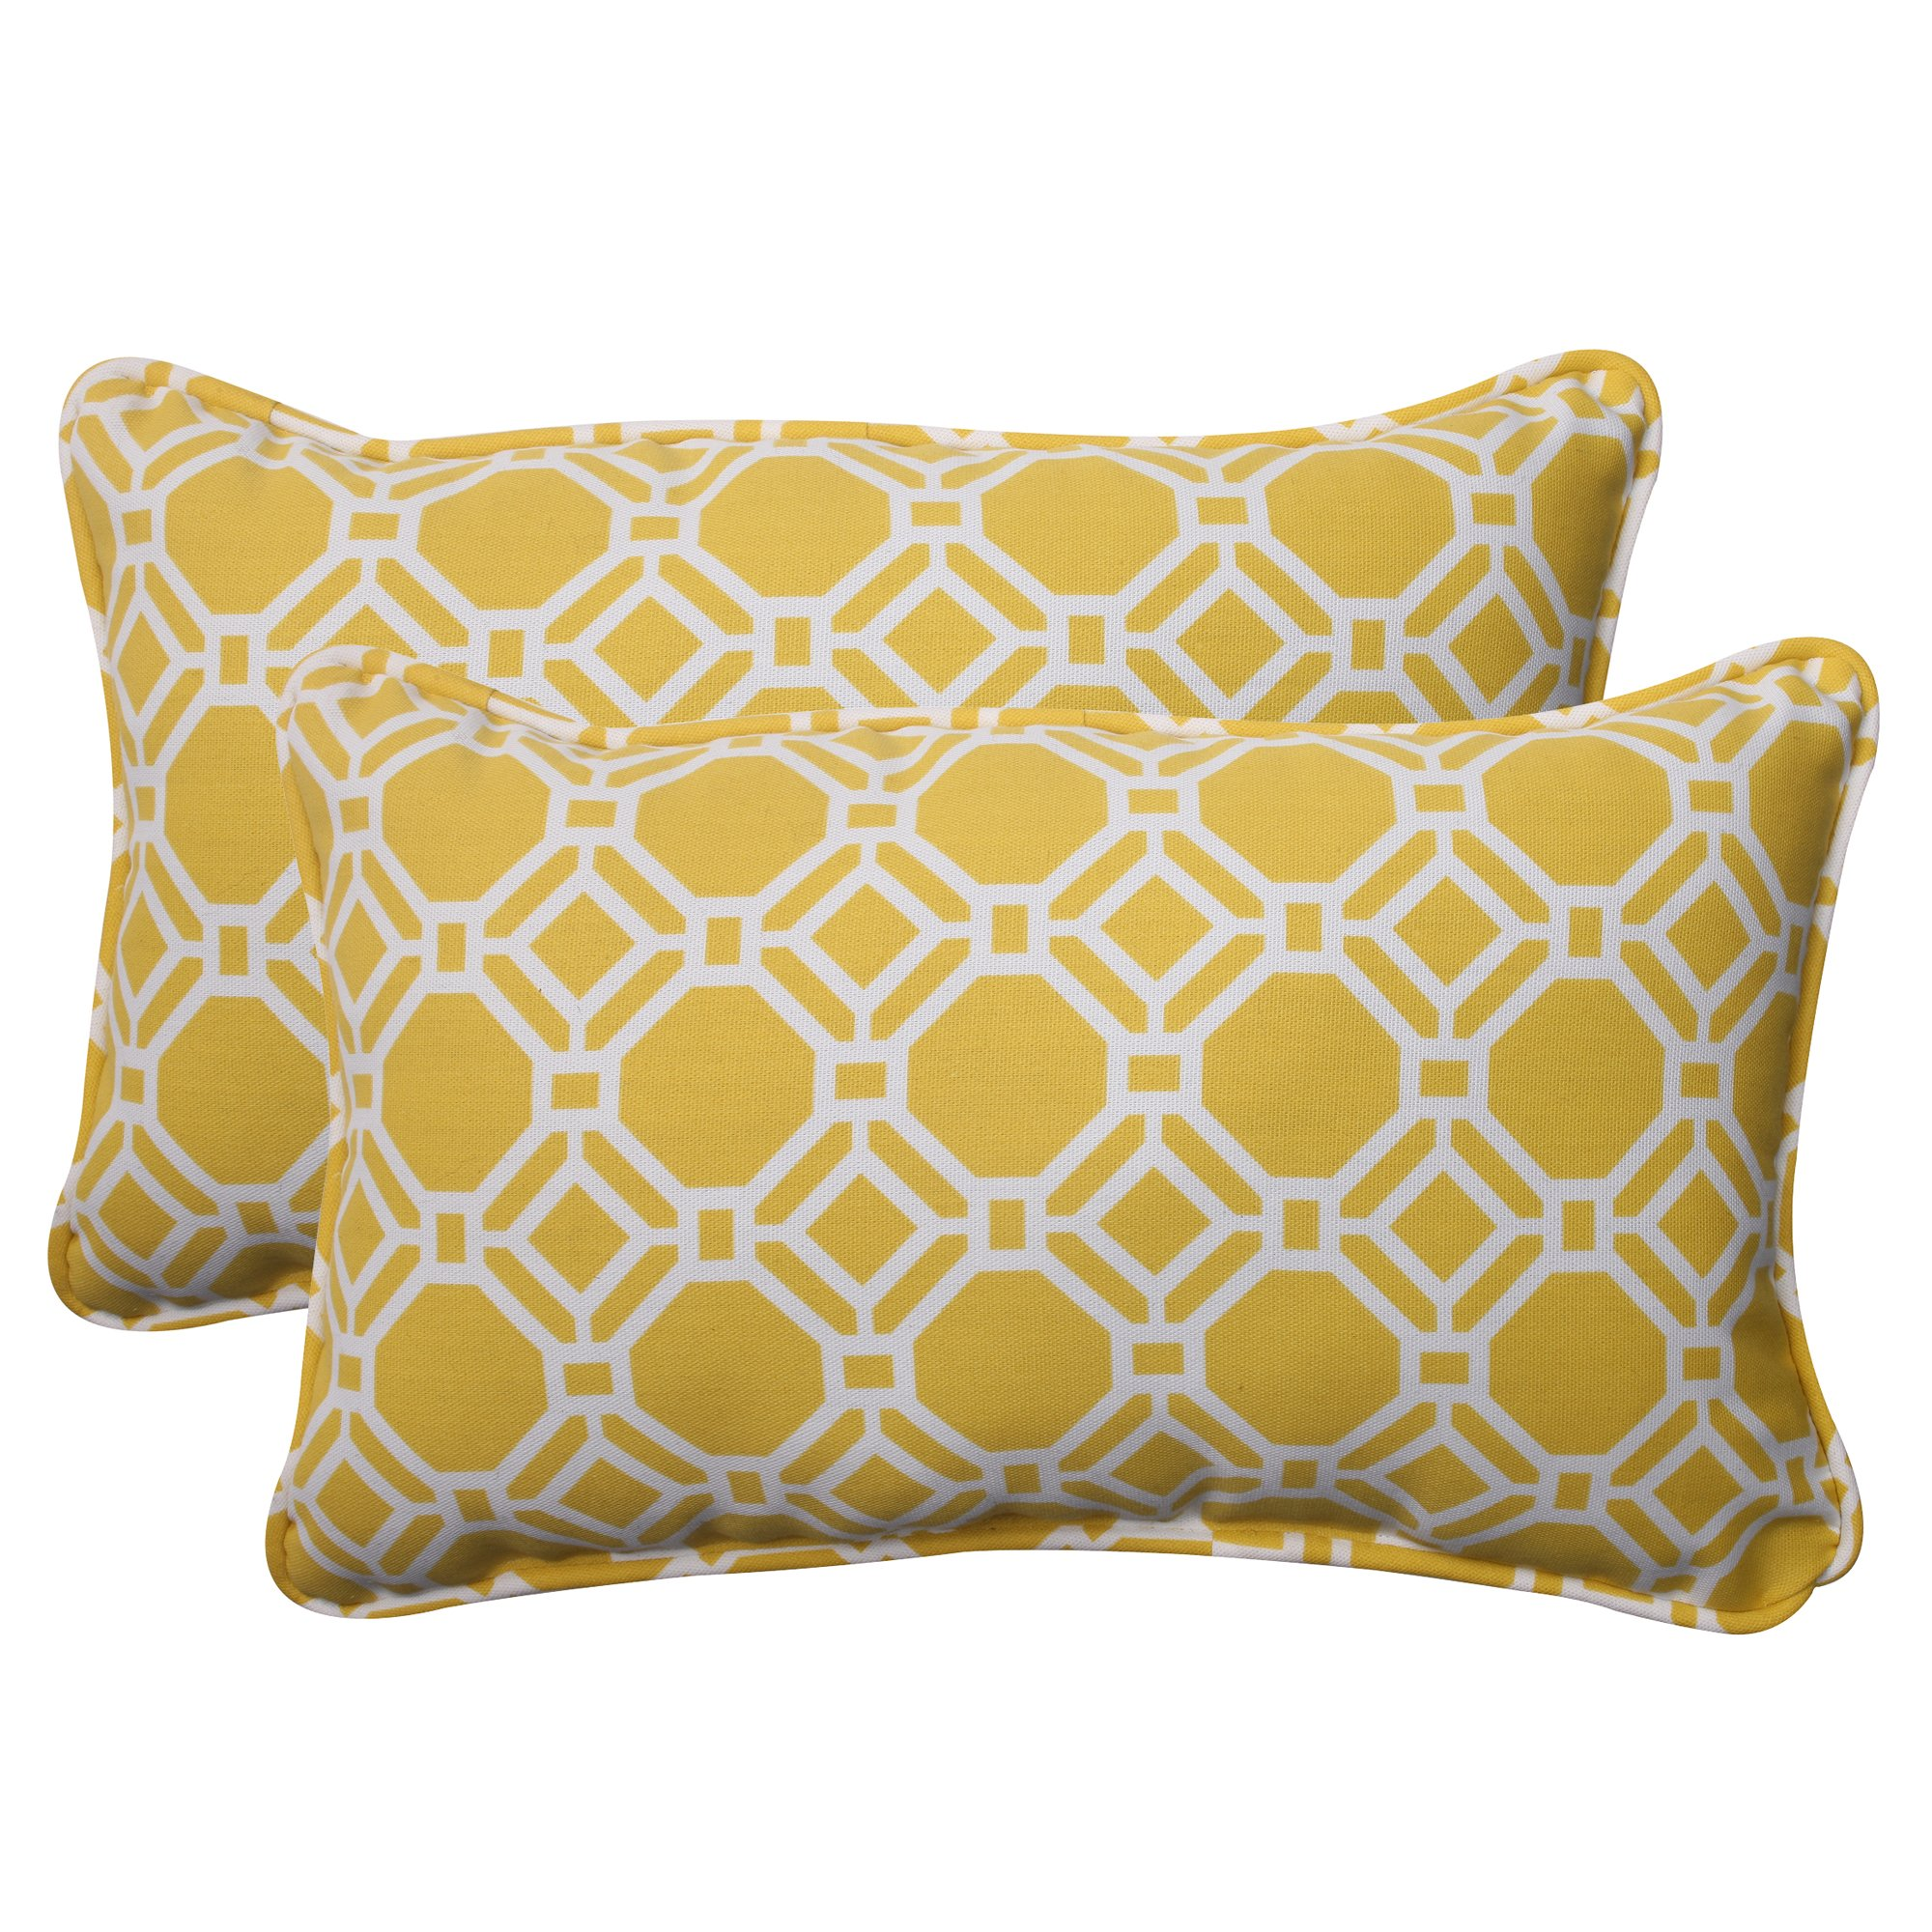 Pillow Perfect Outdoor Rossmere Corded Rectangular Throw Pillow, Yellow, Set of 2